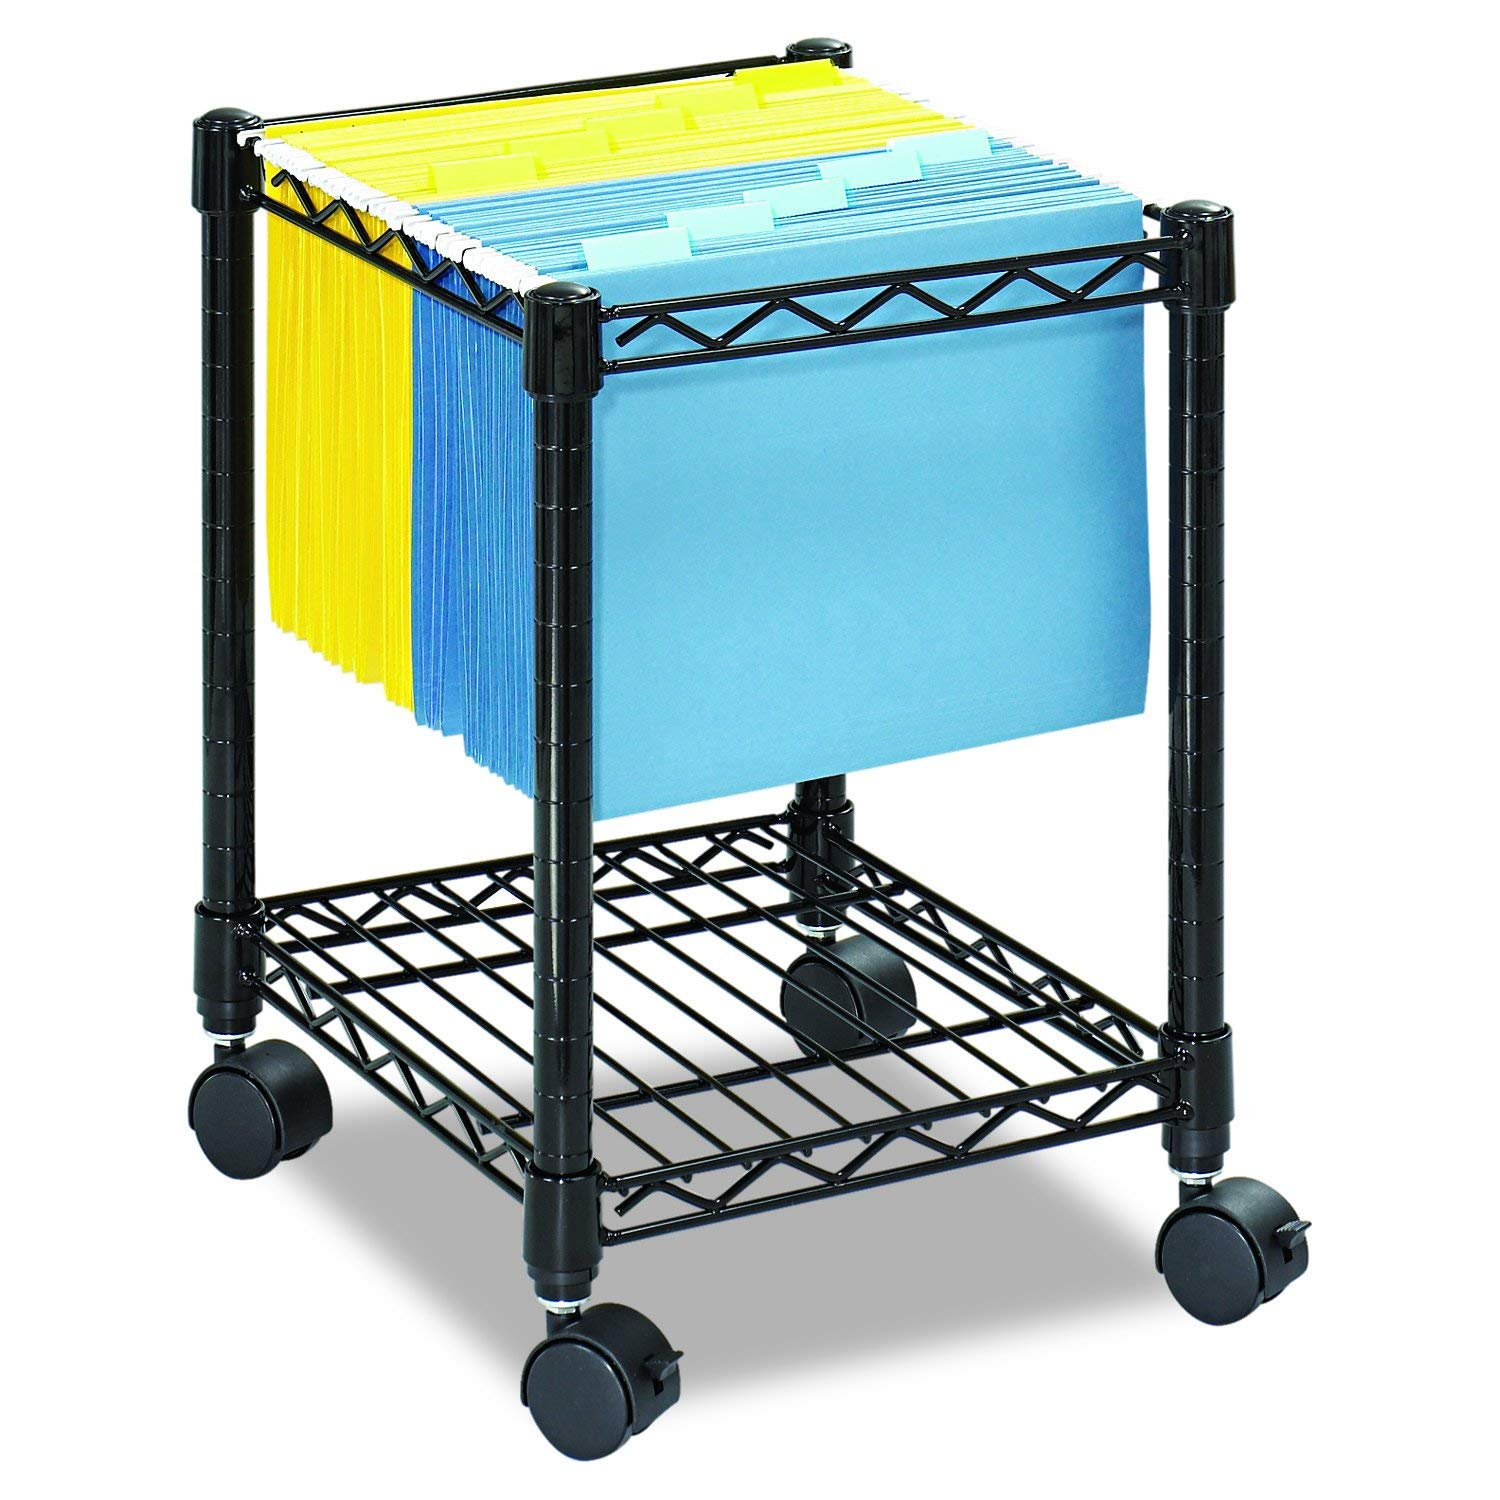 Safco Products CompactMobile Letter Size File Cart 5277BL Black, Black Powder Coat Finish, Swivel Wheels for Mobility